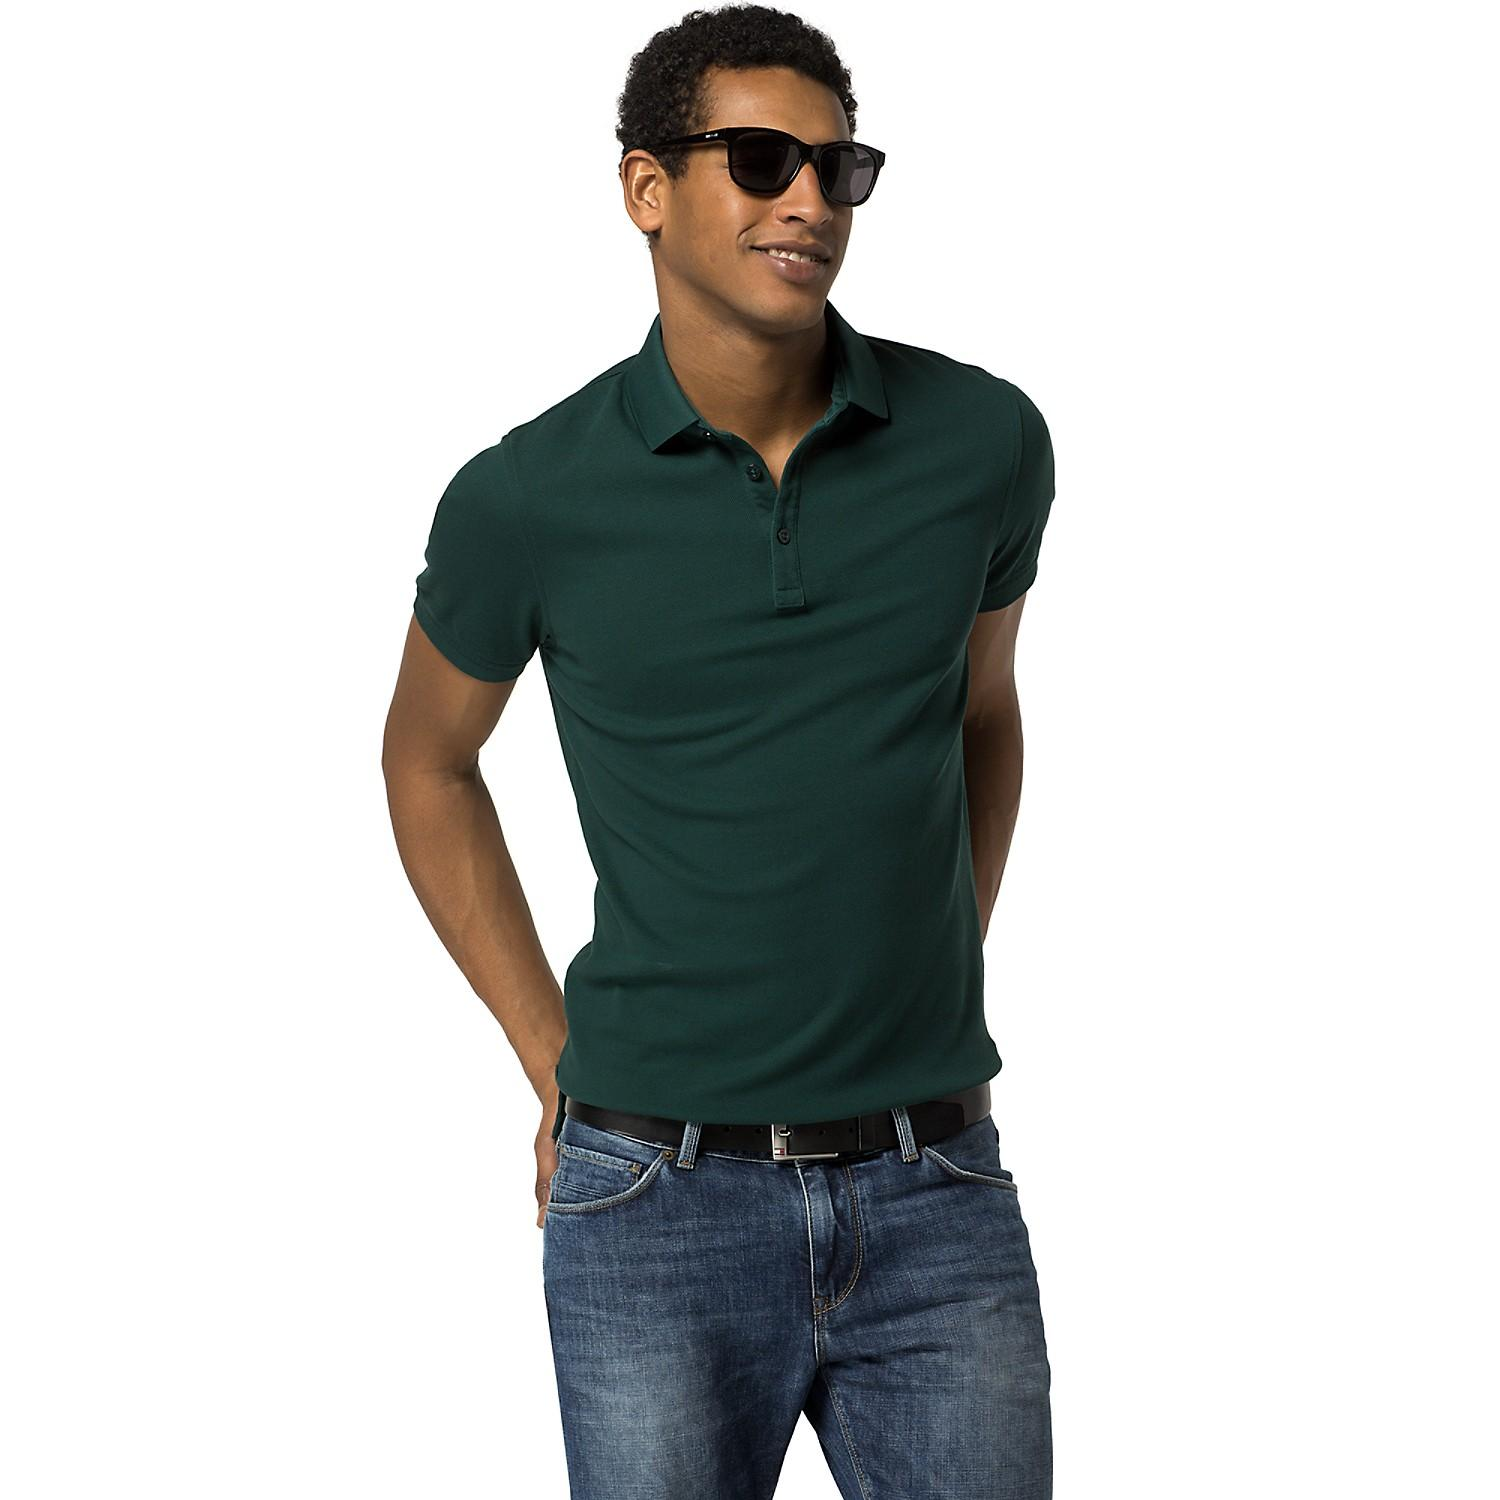 43% Off Slim Fit Solid Polo